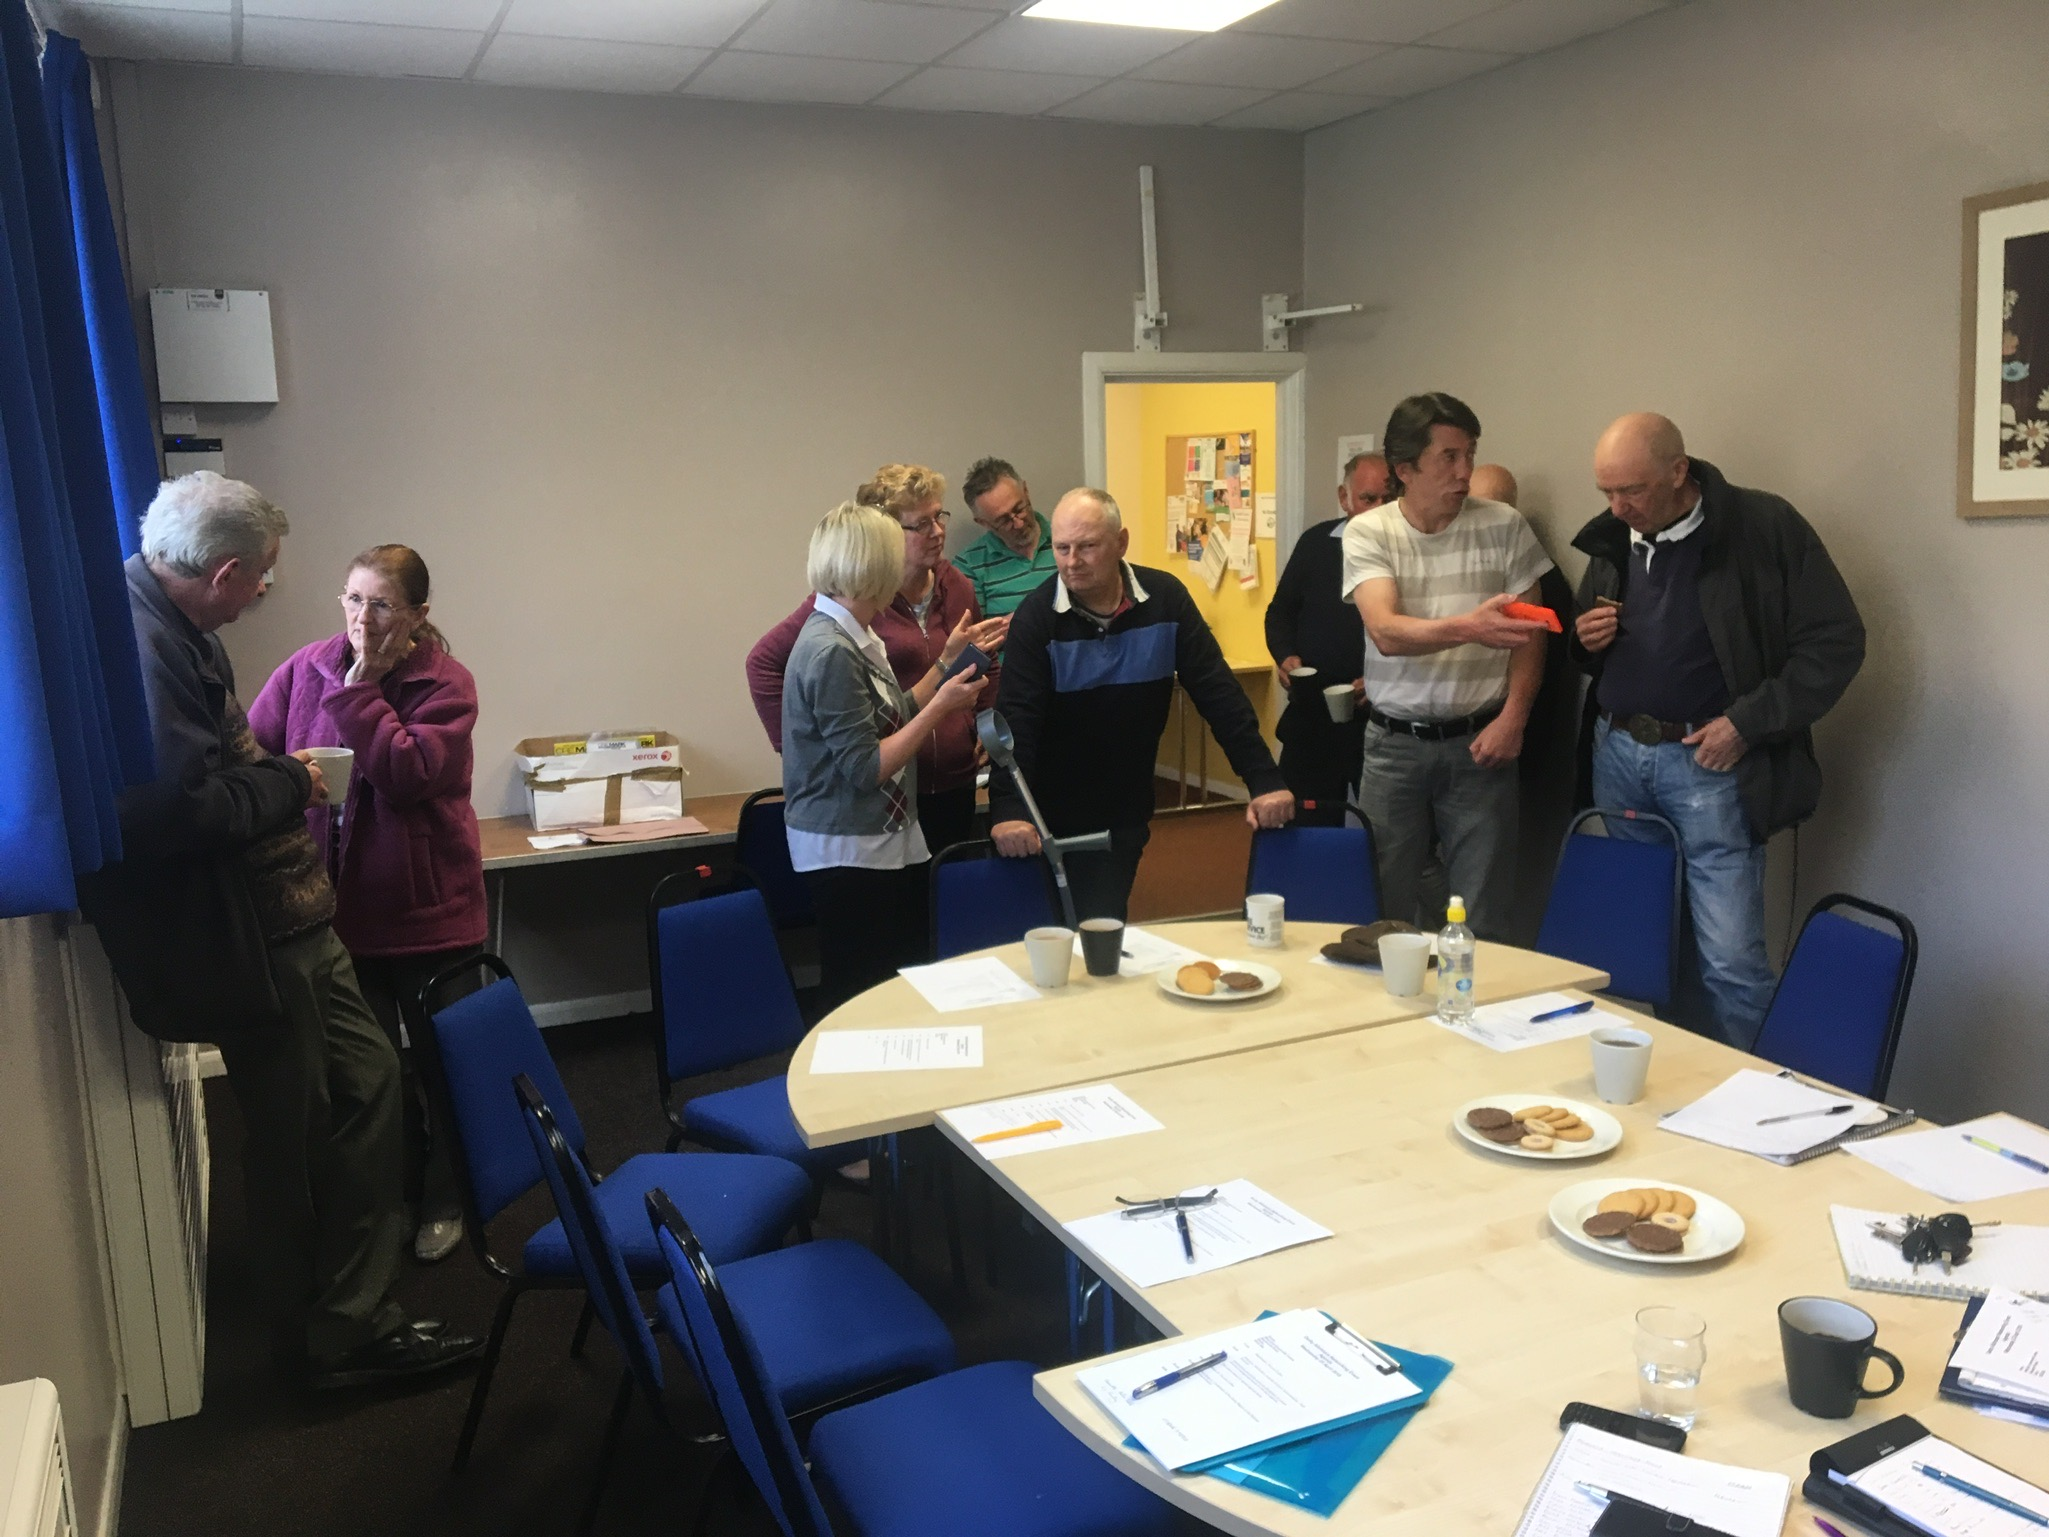 Members of DCC Allotment Forum networking